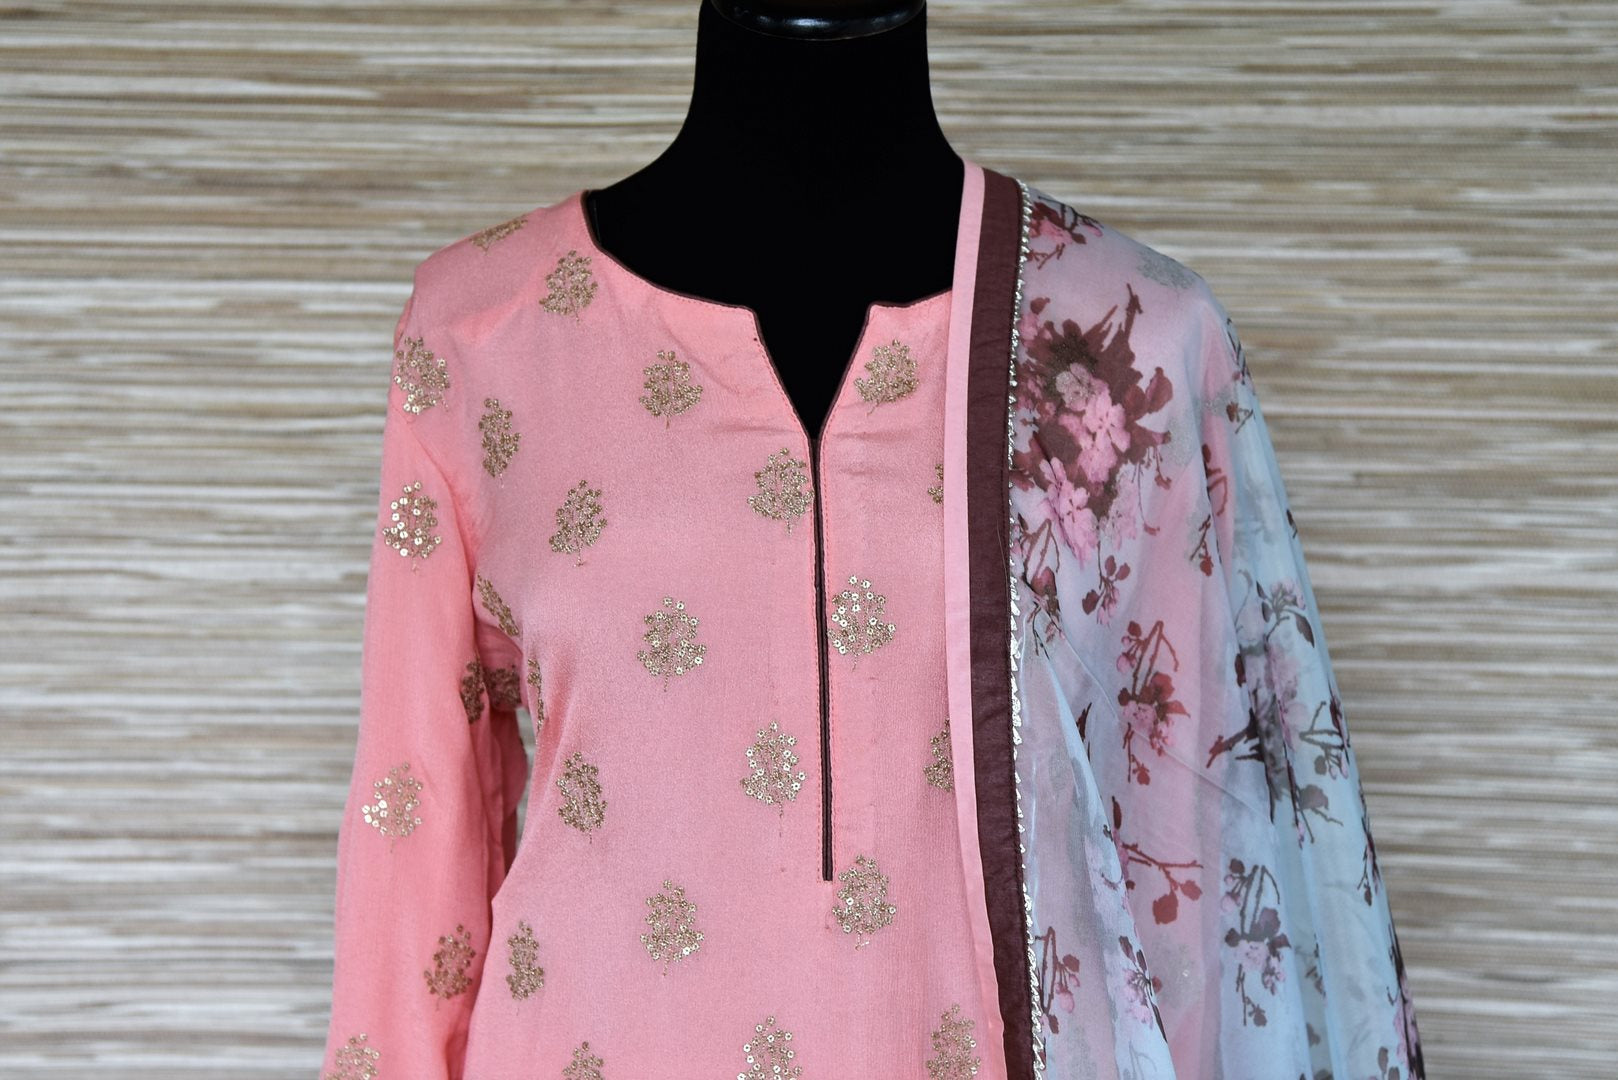 Buy soft pink embroidered georgette sharara suit online in USA with blue floral dupatta. Get your hands on exquisite Indian designer suits, wedding dresses in USA from Pure Elegance Indian clothing store for various special occasions like weddings and parties. Shop online now.-top